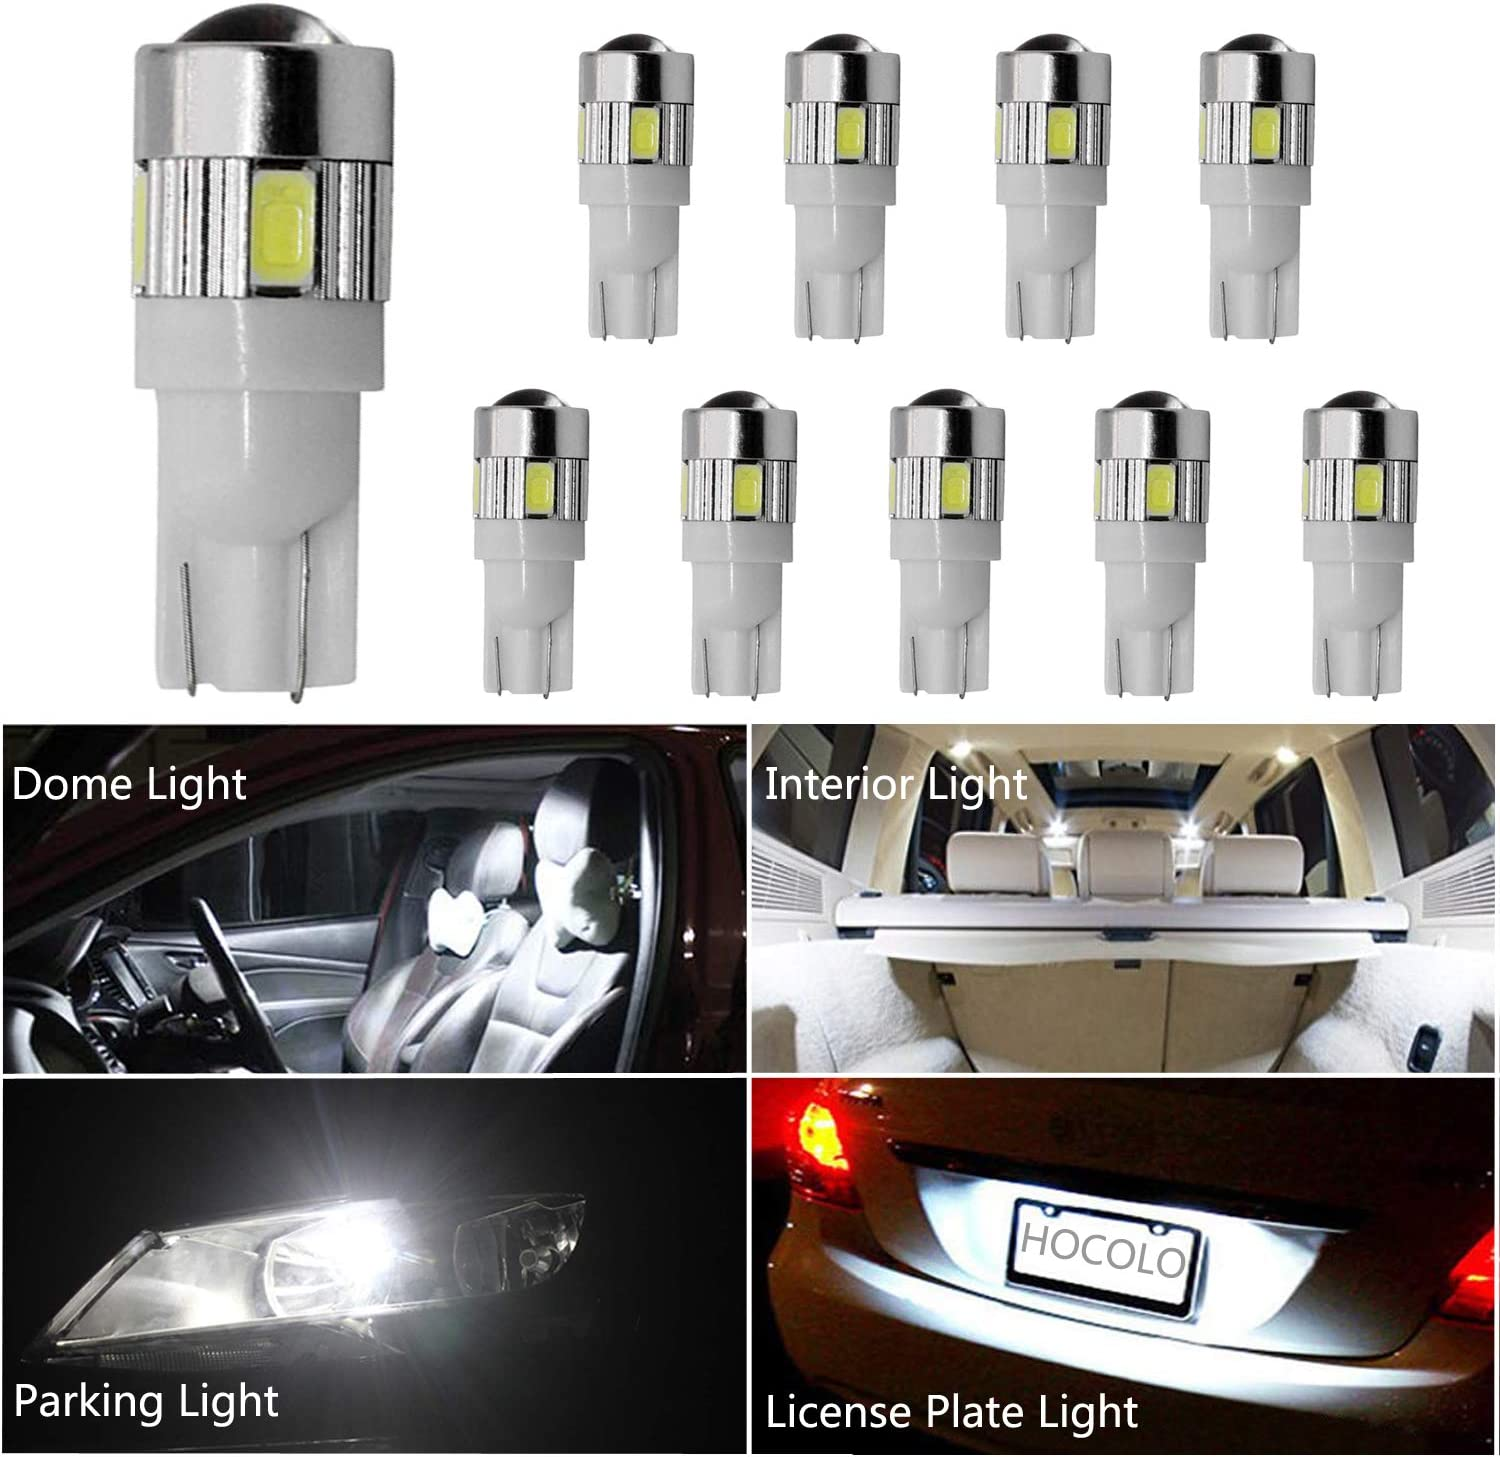 HOCOLO 10x T10 198 194 168 912 921 W5W 2825 White 6000K-6500K Xenon Color Color High Power LED Bulbs For Interior Dome/Map/License Plate/Parking/Door/Trunk Lights (10pcs T10 6-SMD, White)